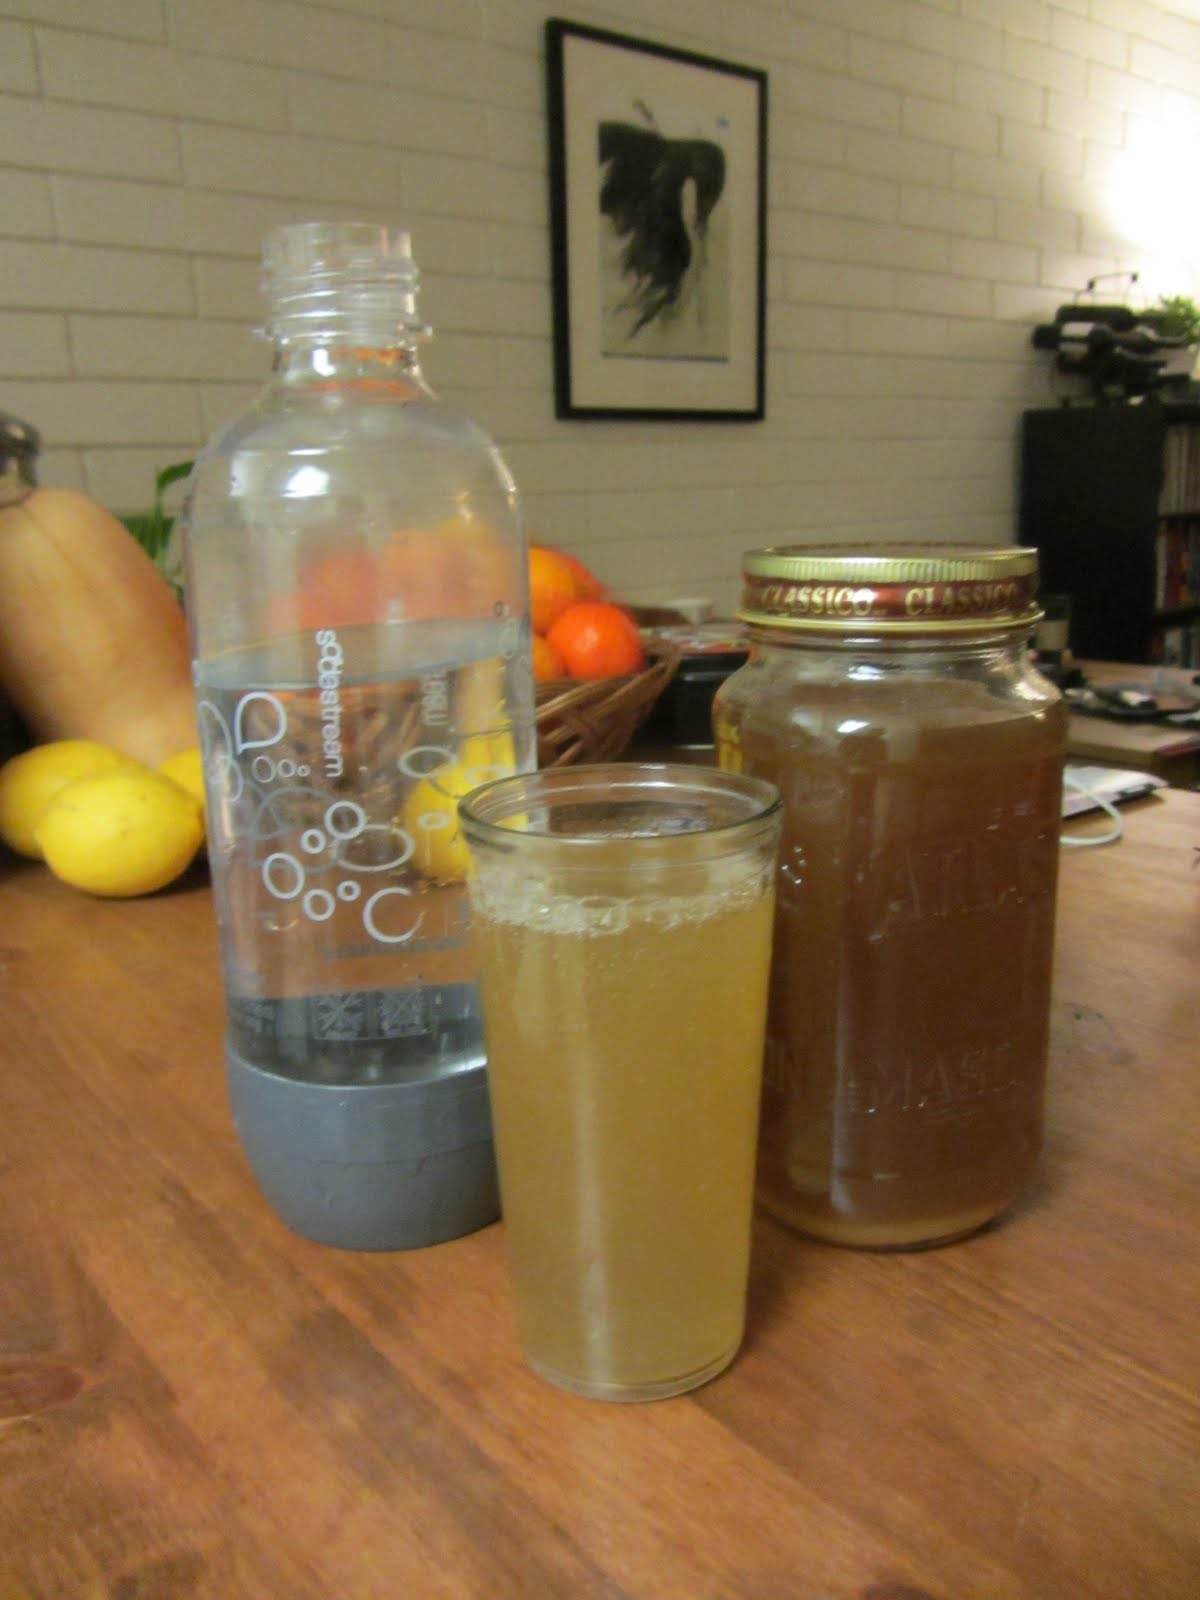 Mike is Bored: Homemade ginger ale recipe. Syrup method ...